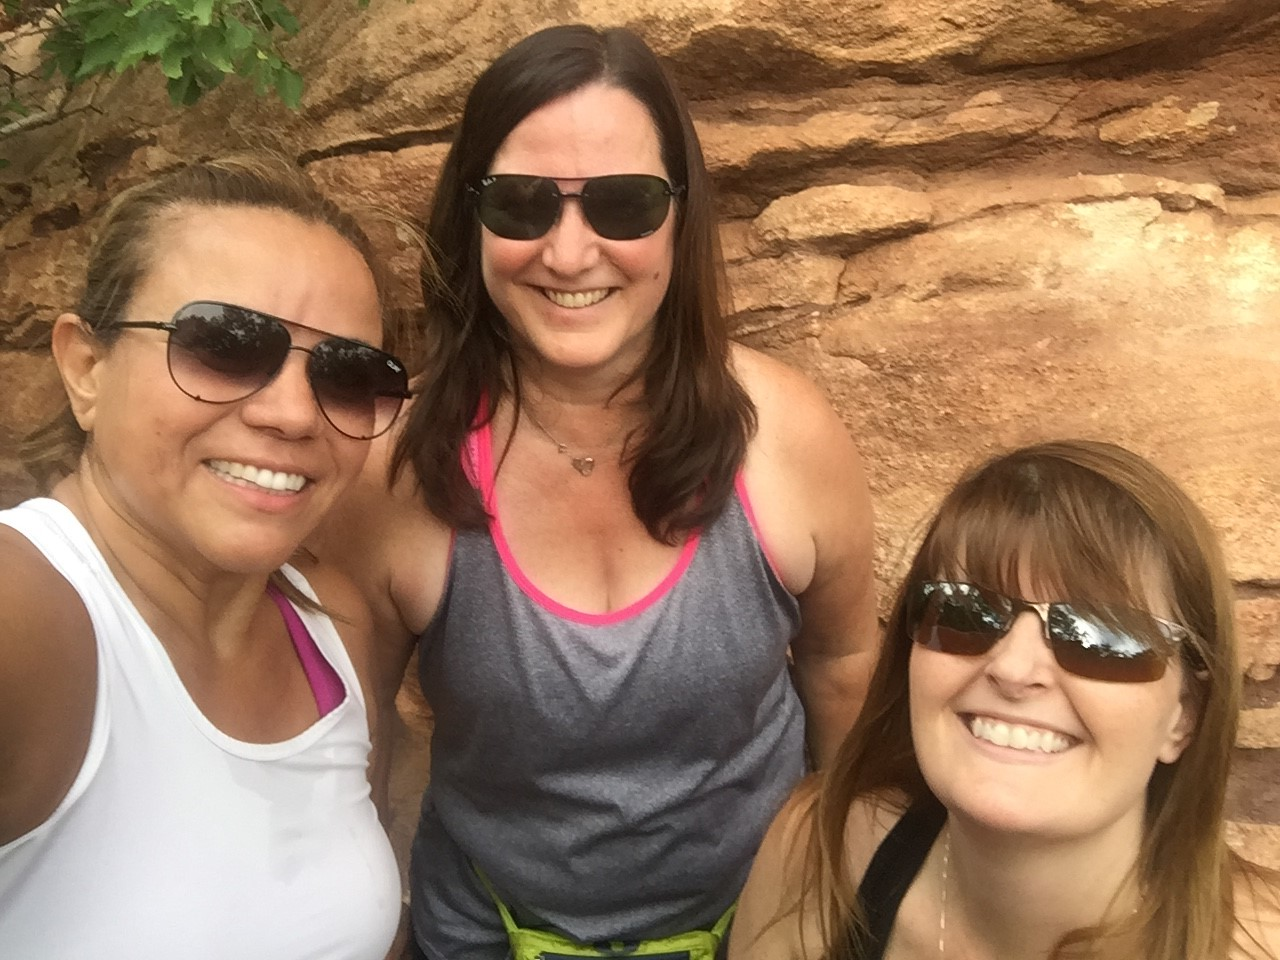 Three sweaty people on mountain hike.